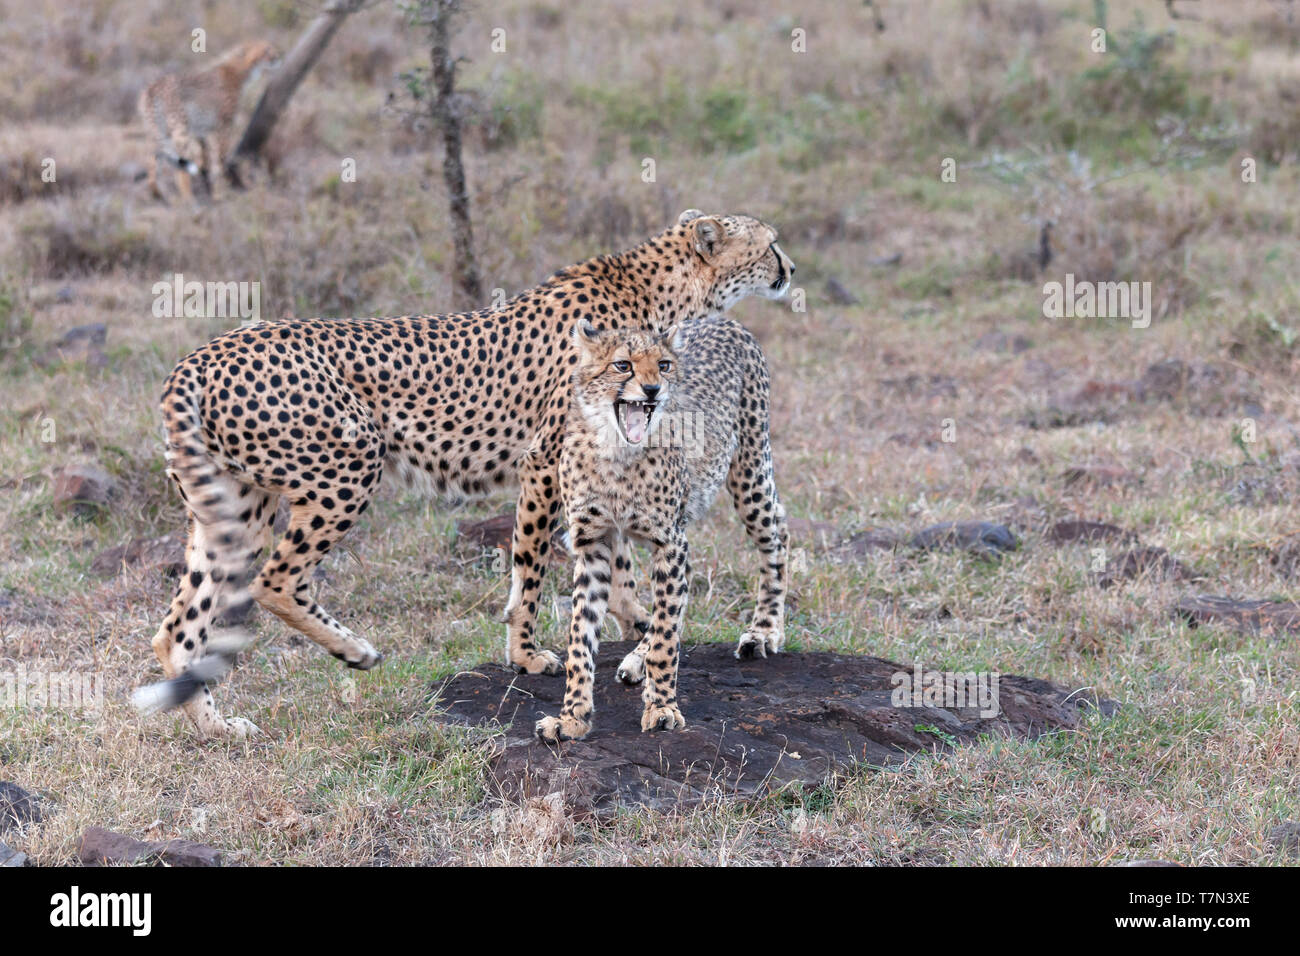 A female cheetah with one of her three cubs standing in open grassland, cub snarling, low light, Ol Pejeta Conservancy, Laikipia, Kenya, Africa - Stock Image